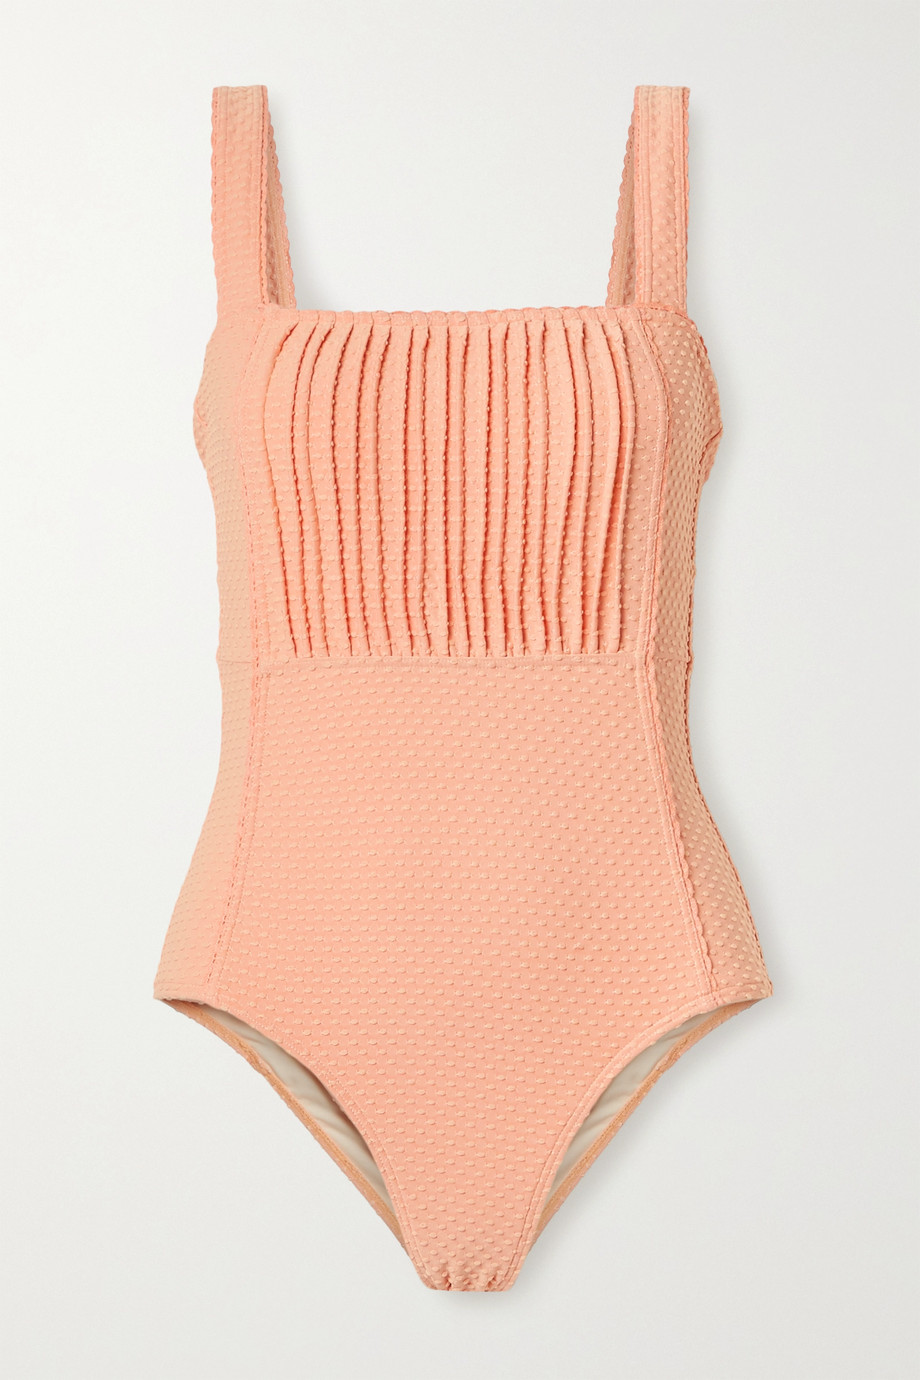 Peony Pintucked Swiss-dot stretch swimsuit